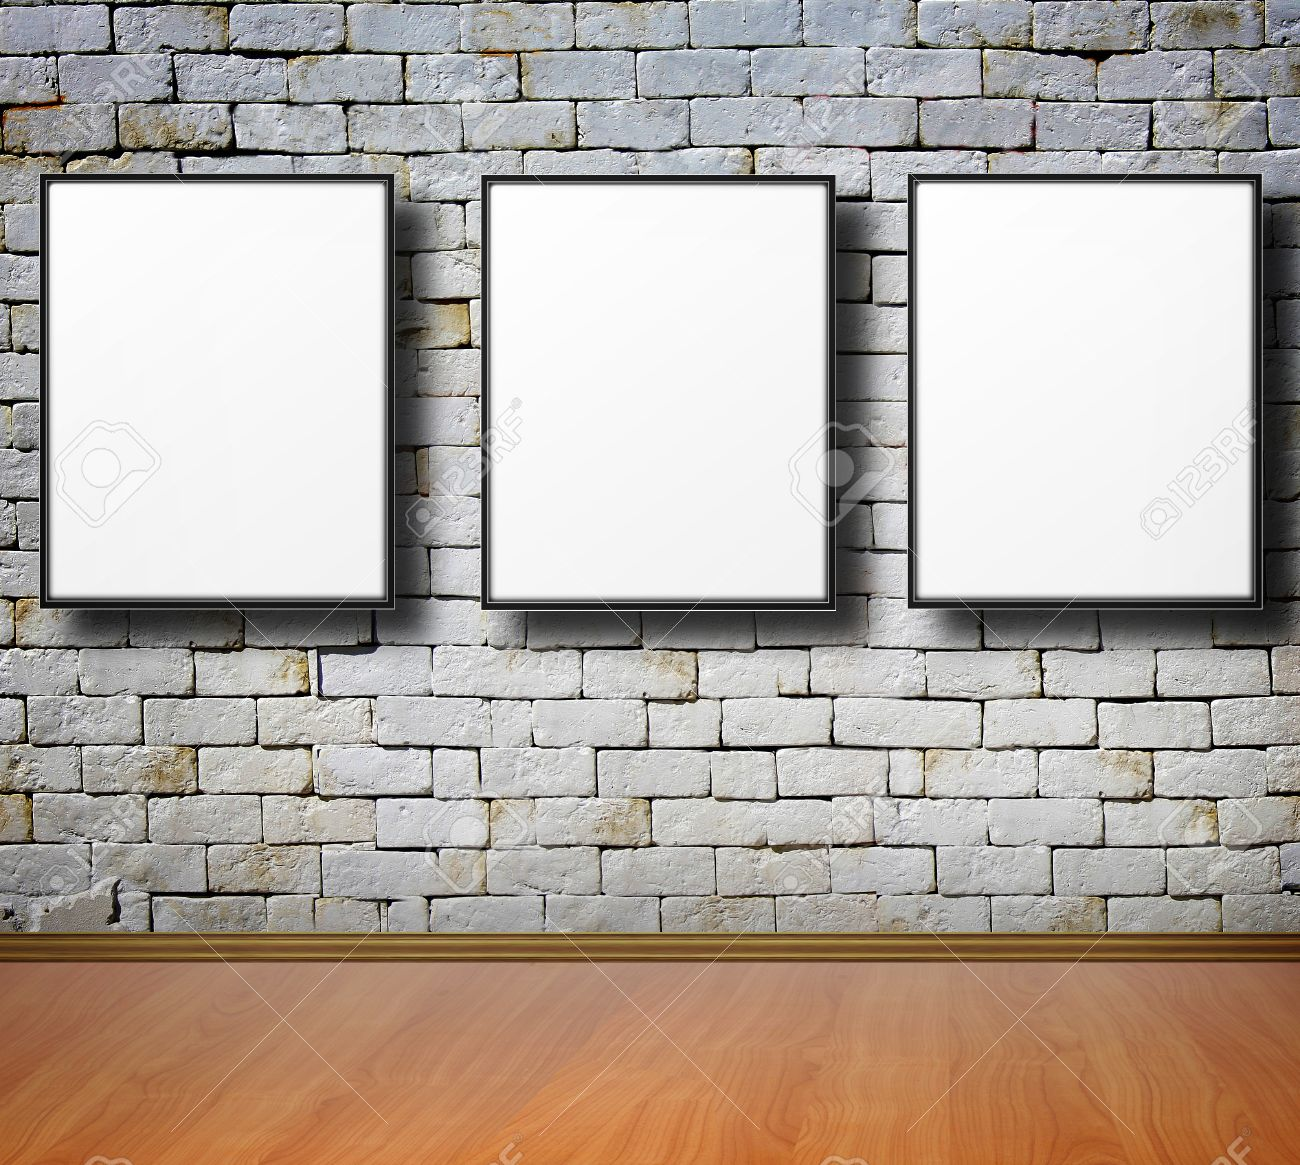 frames on white wall old brick stock photo picture and royalty free